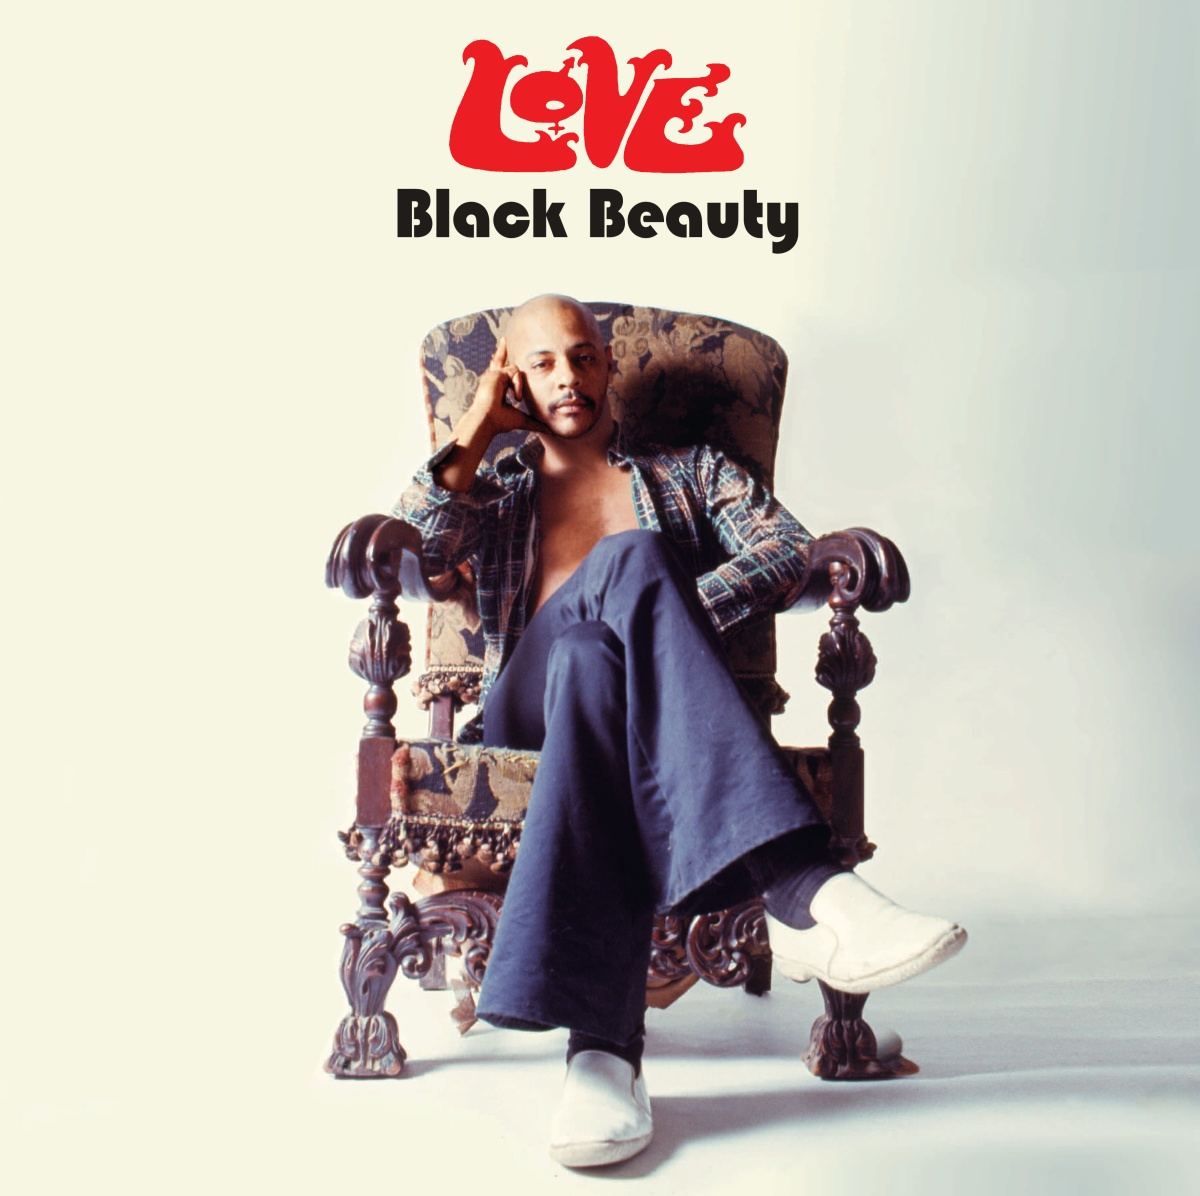 Love's Legendary Album Black Beauty Now Available for Digital Download and Streaming